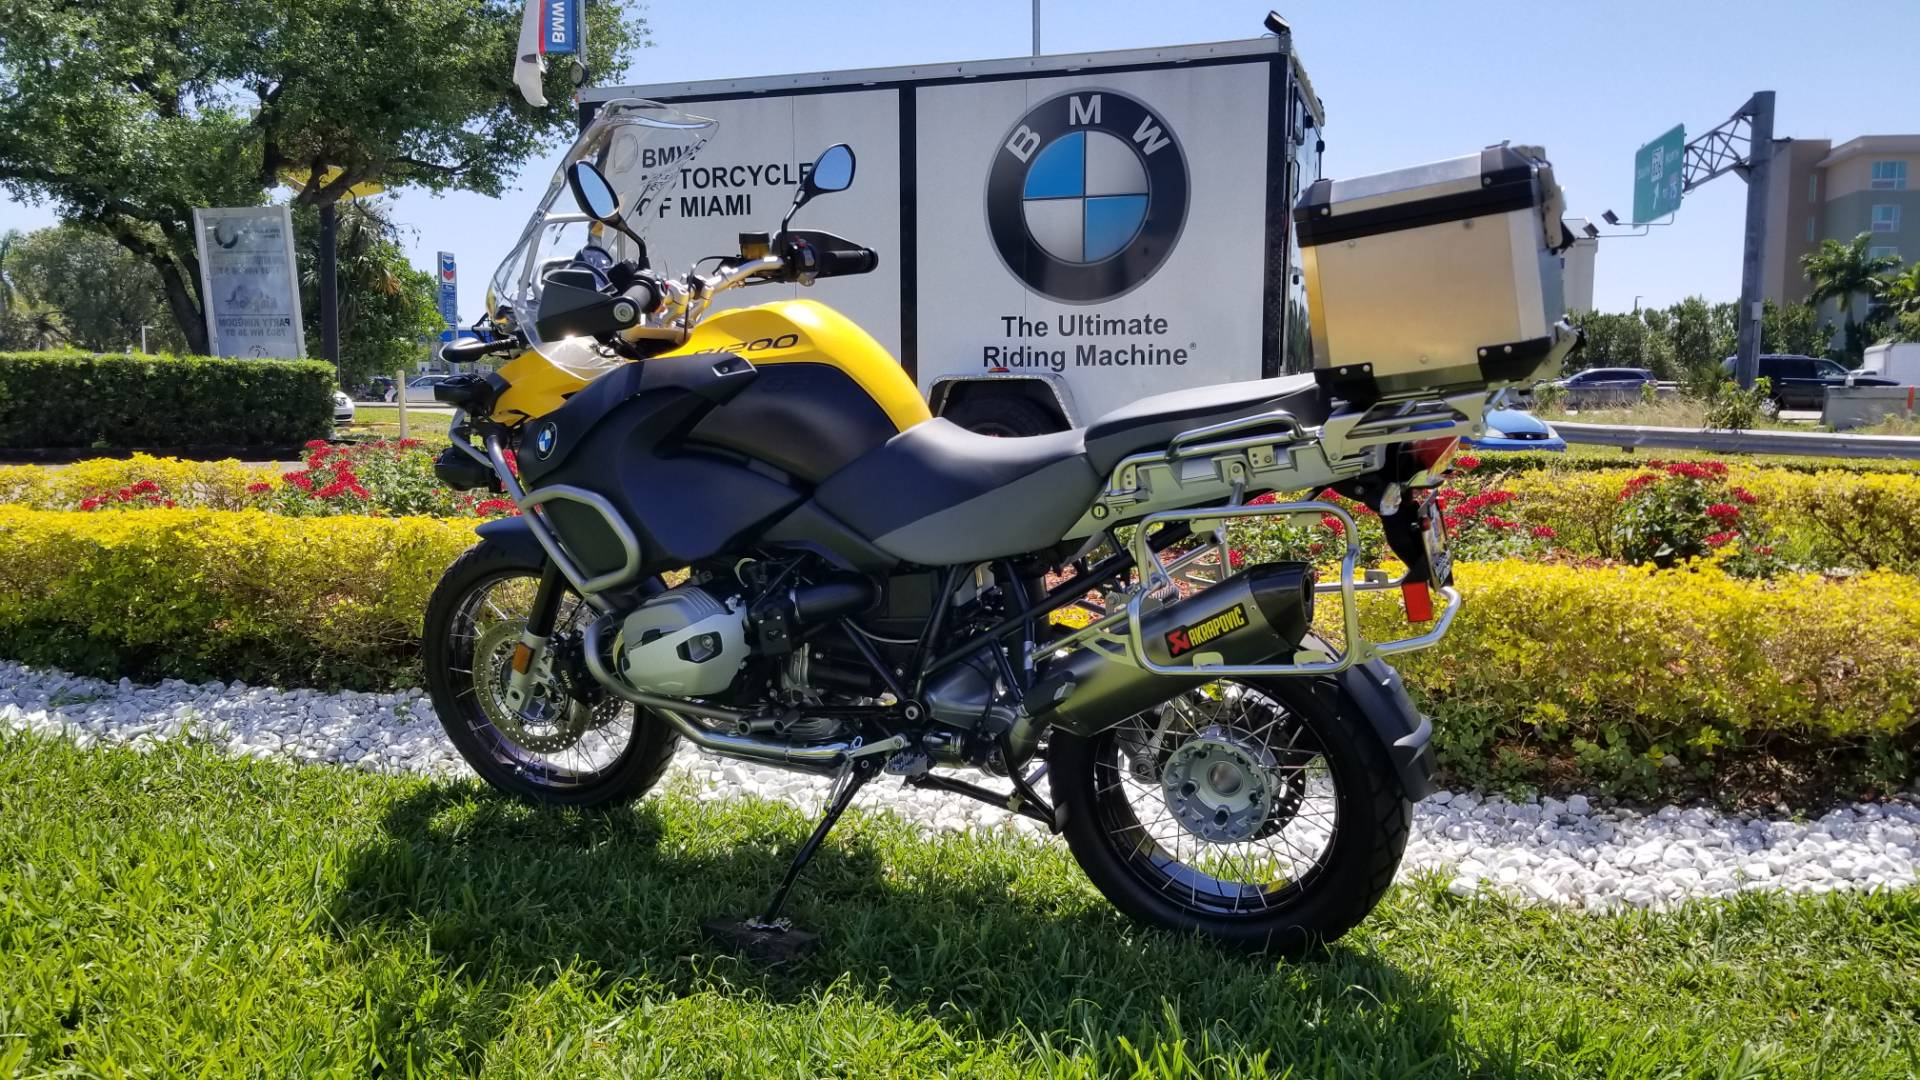 Used 2011 BMW R 1200 GSA For Sale, Pre owned BMW R 1200GSA For Sale, BMW Motorcycle R1200GSA, BMW Motorcycles of Miami, Motorcycles of Miami, Motorcycles Miami - Photo 9